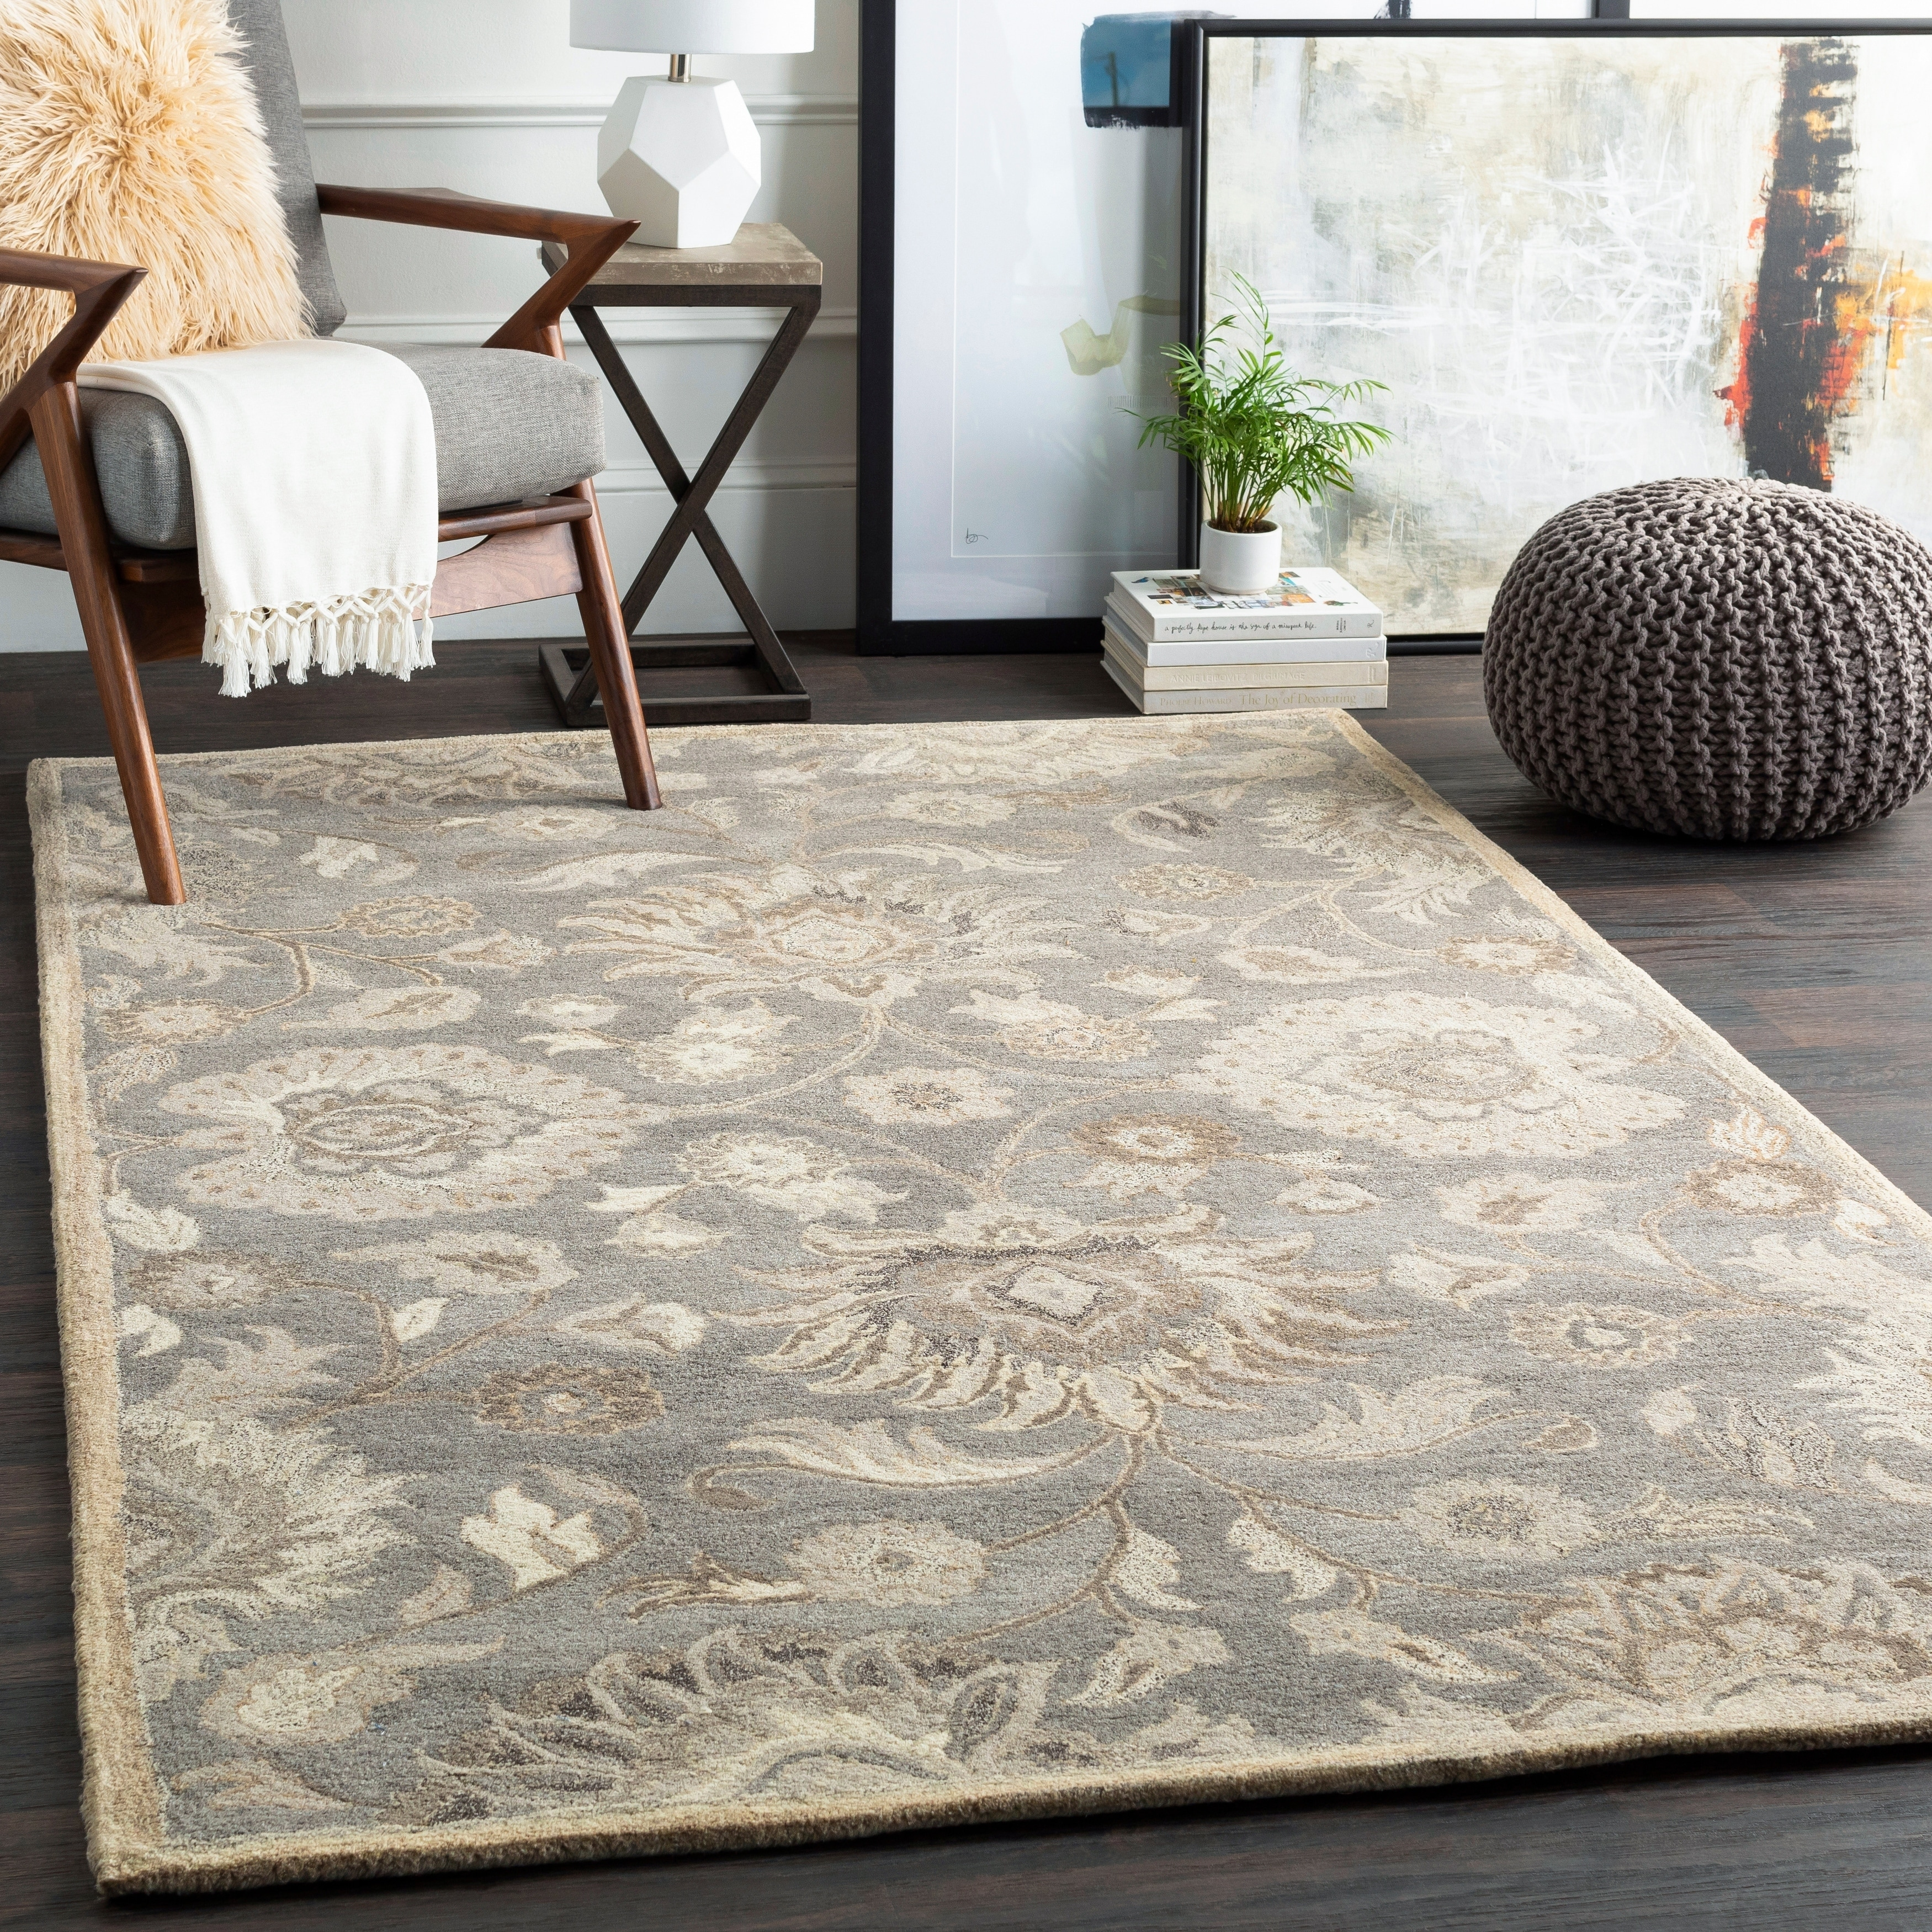 Shop Hand Tufted Patchway Wool Rug 8 X 10 Oval 8 X 10 Oval Overstock 29558795